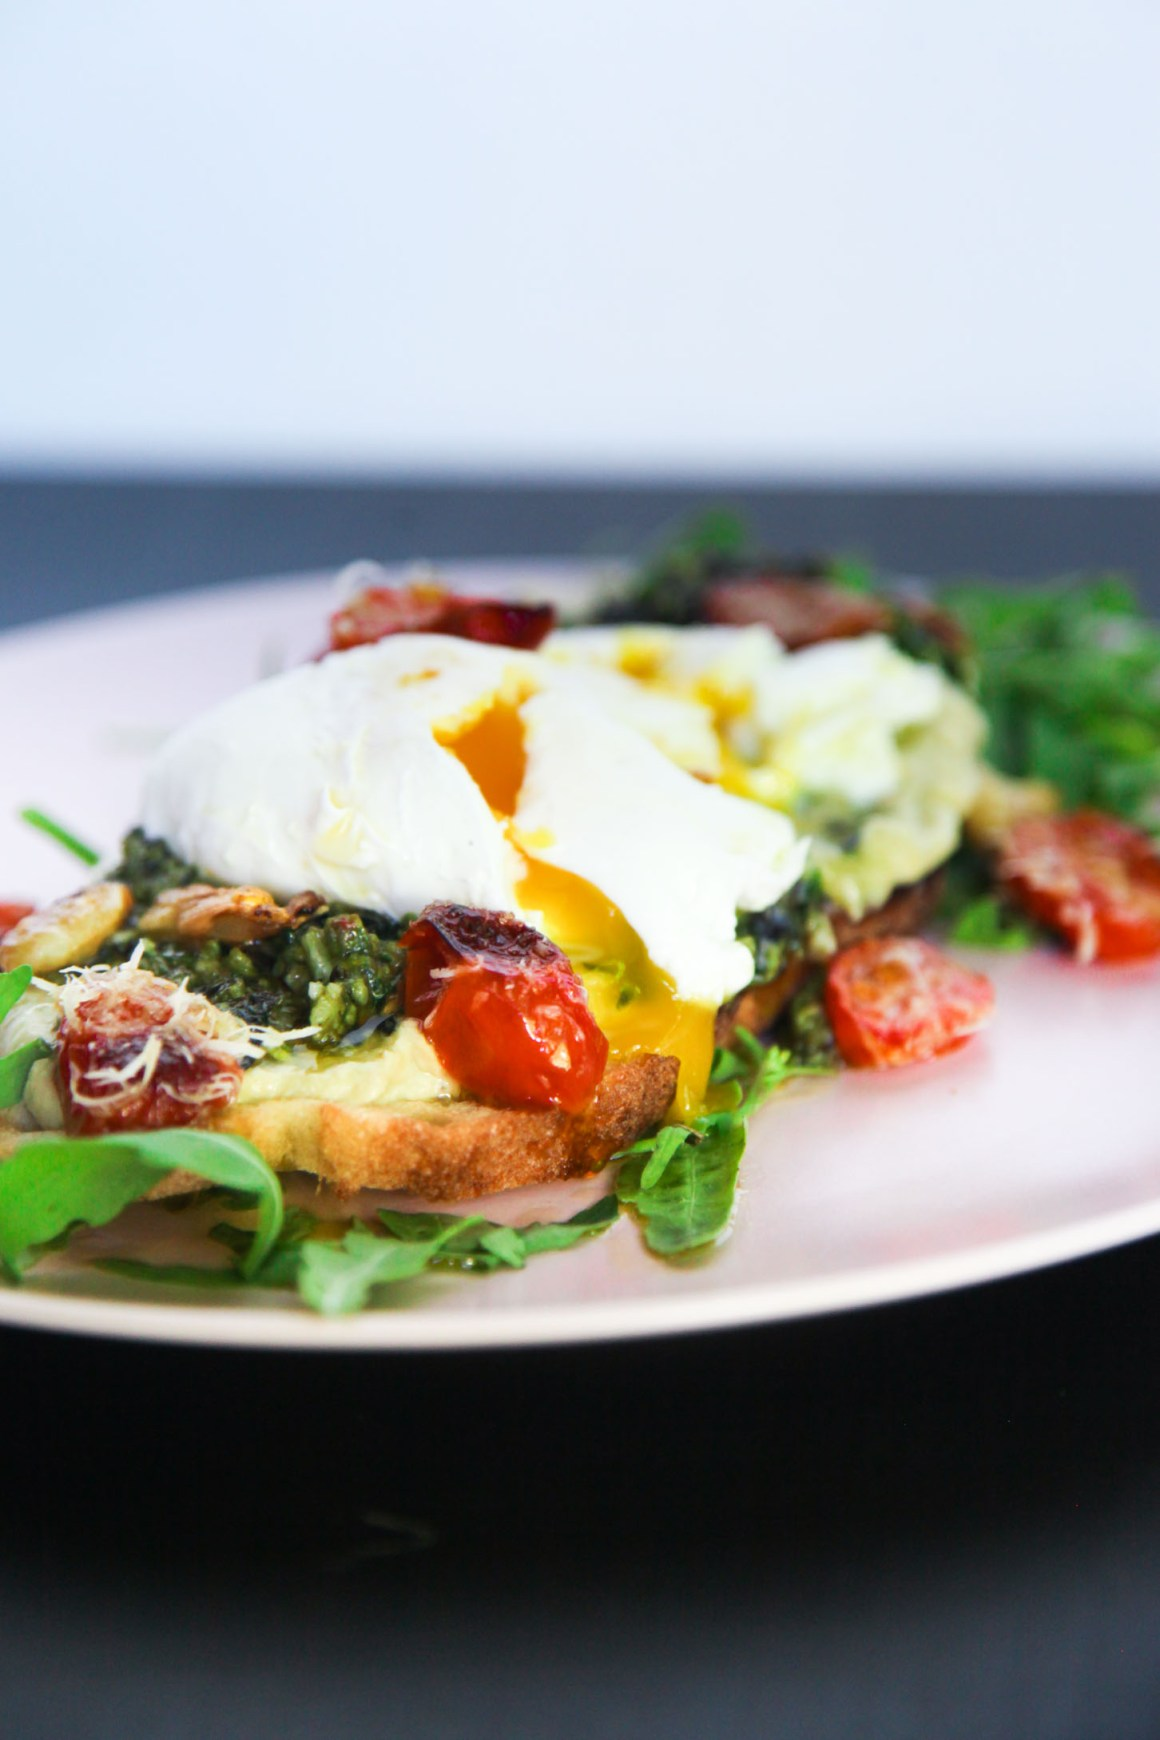 Delicious Umami Brunch with Oven Roasted Tomatoes, Hummus and Pesto | Berries and Spice